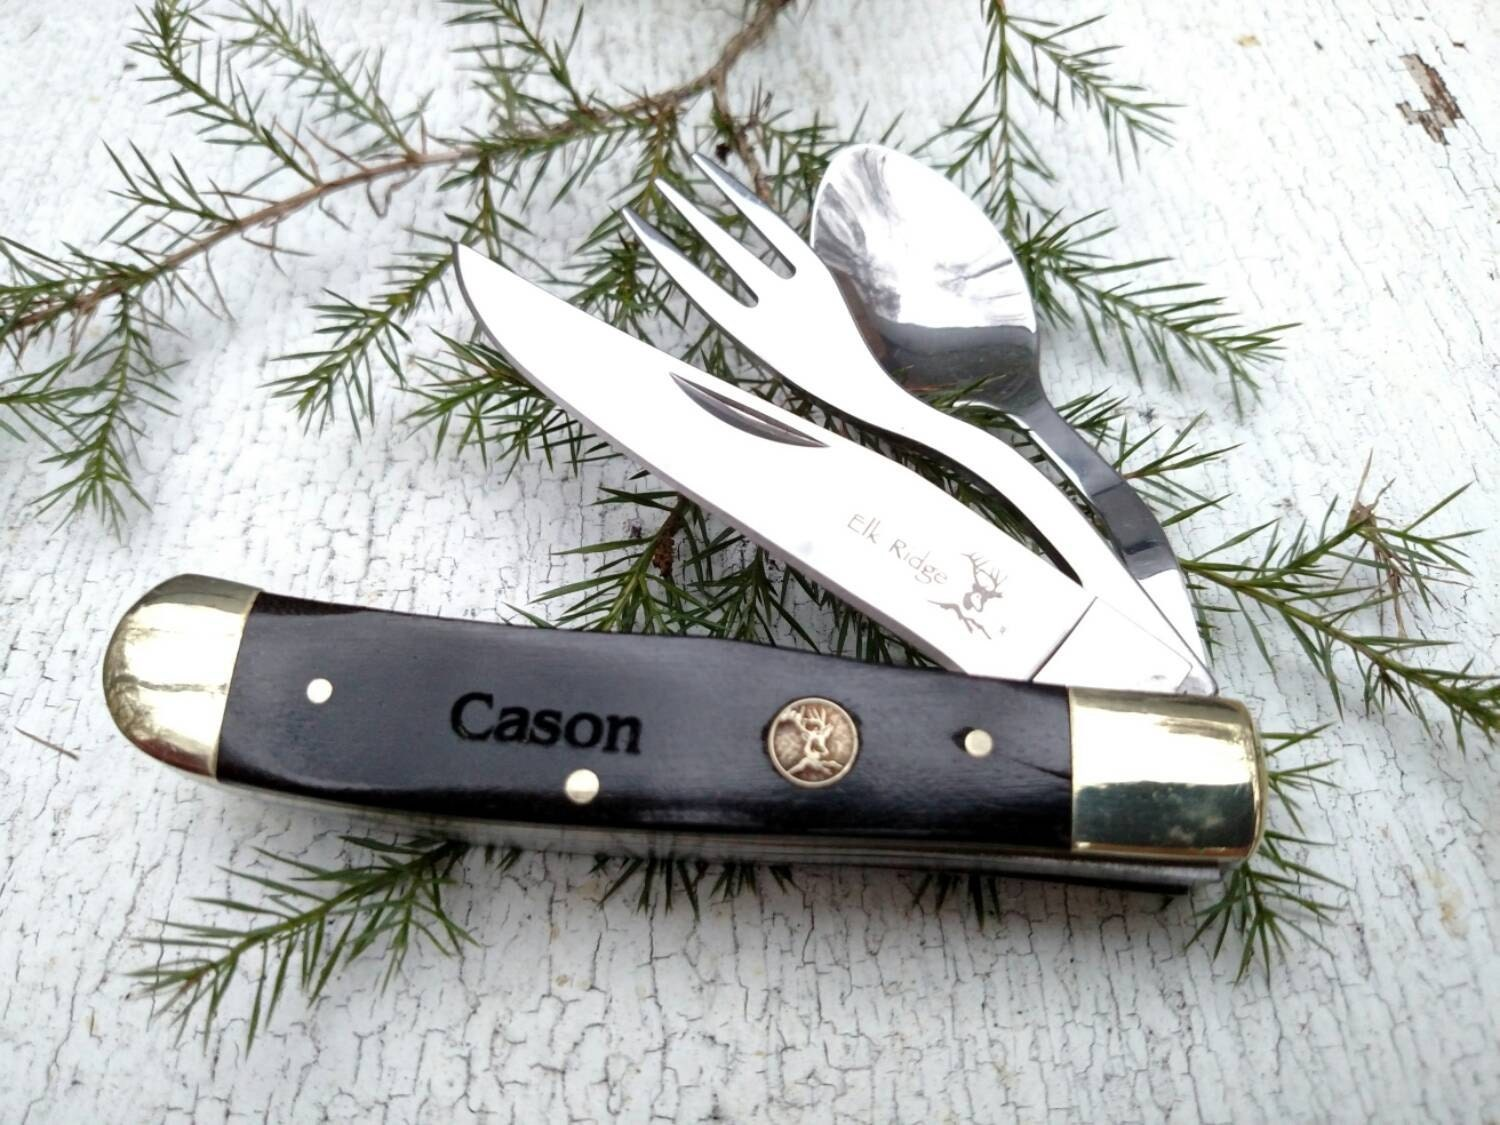 Camping Knife Army Knife Boy Scout Knife Hobo Knife